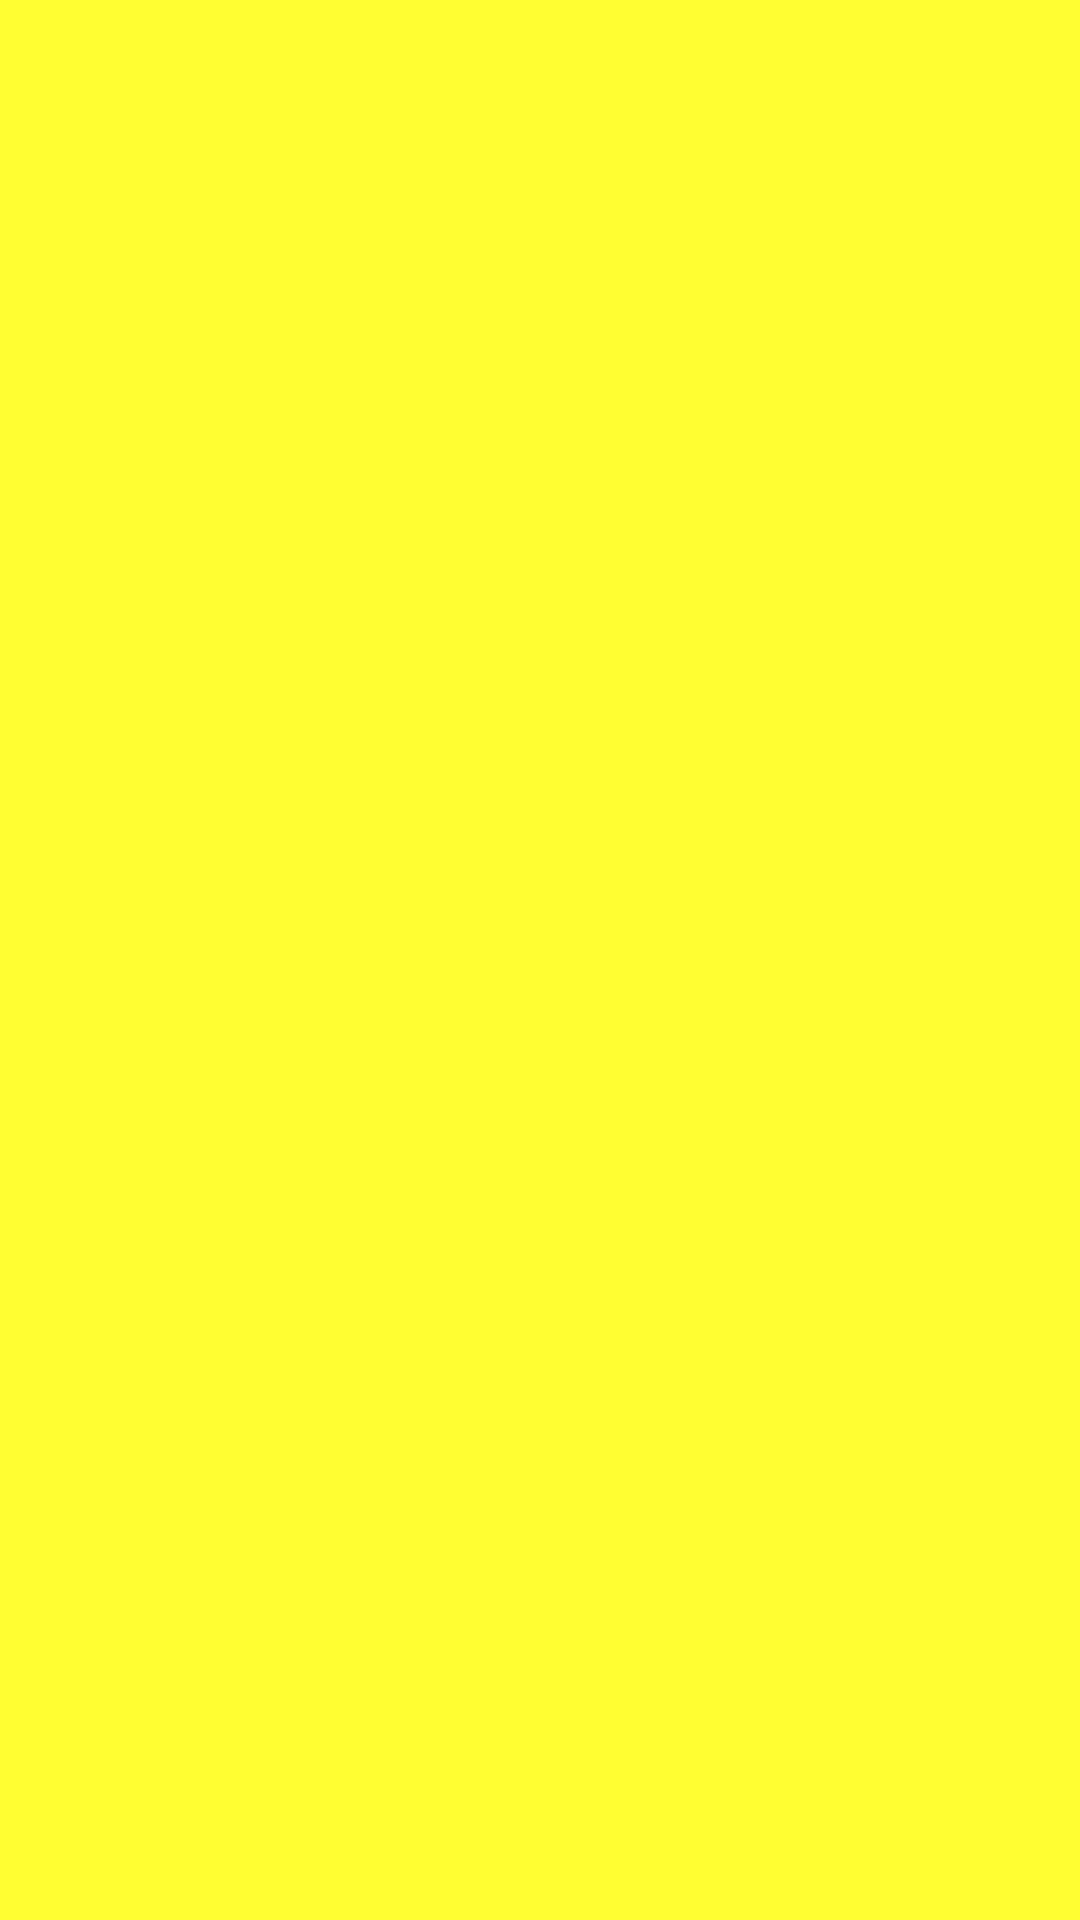 1080x1920 Yellow RYB Solid Color Background